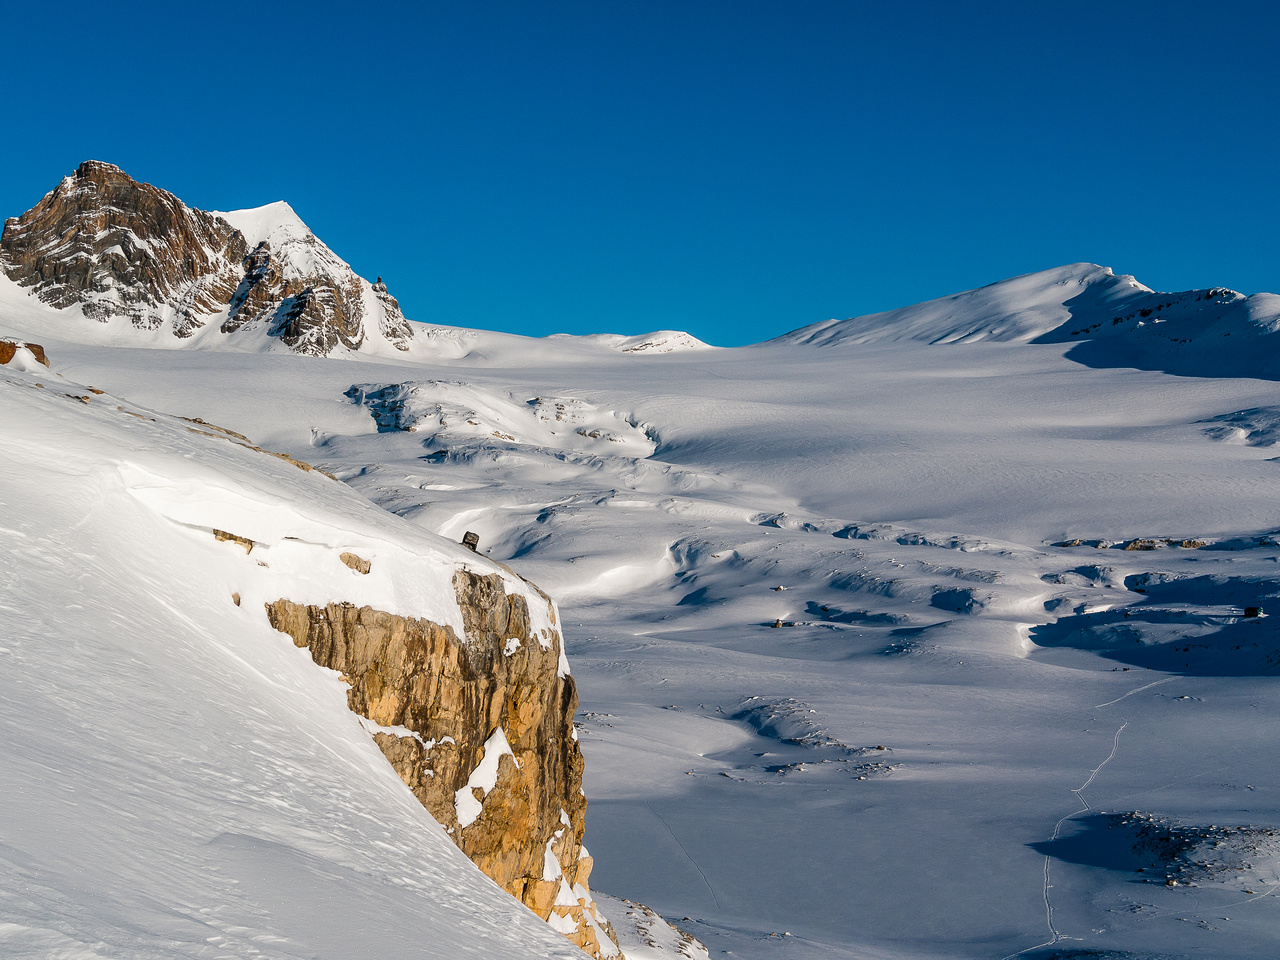 Another gorgeous morning, looking back up the Vulture Glacier - Olive on the left and Vulture on the right.